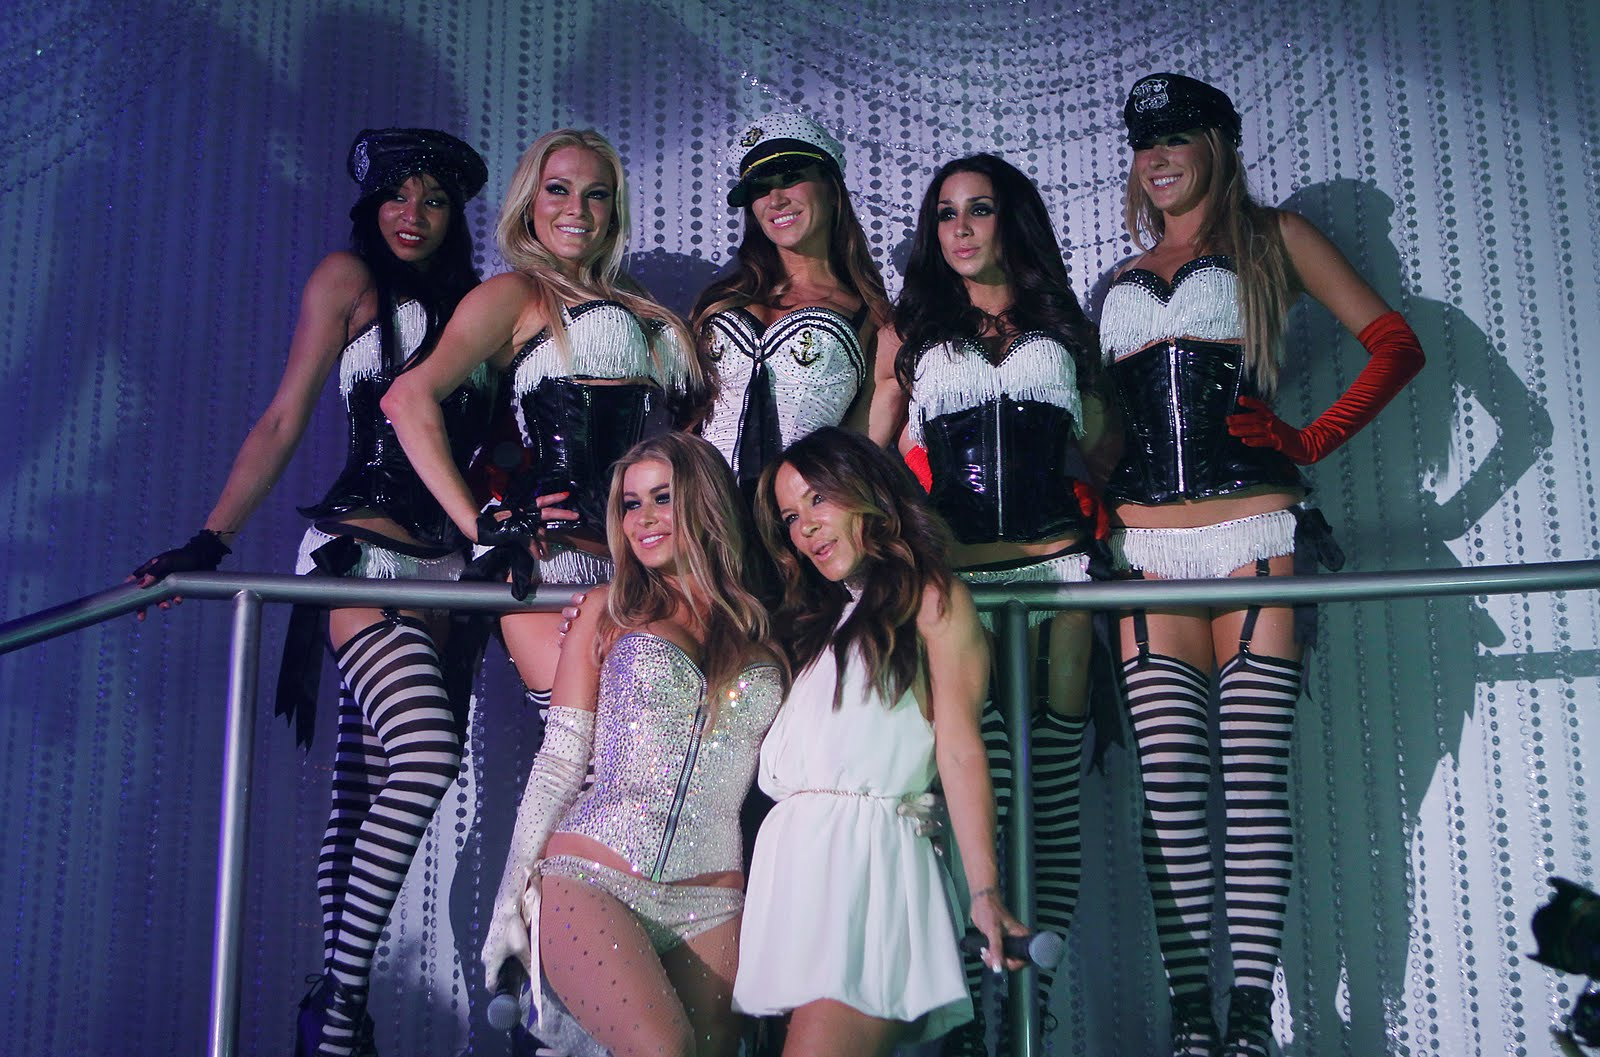 Uncategorized information about pussycat dolls -  They Were Surprised With A Congratulatory Cake From Sugar Factory American Brasserie The Friends Continued To Celebrate Into The Early Hours Of The